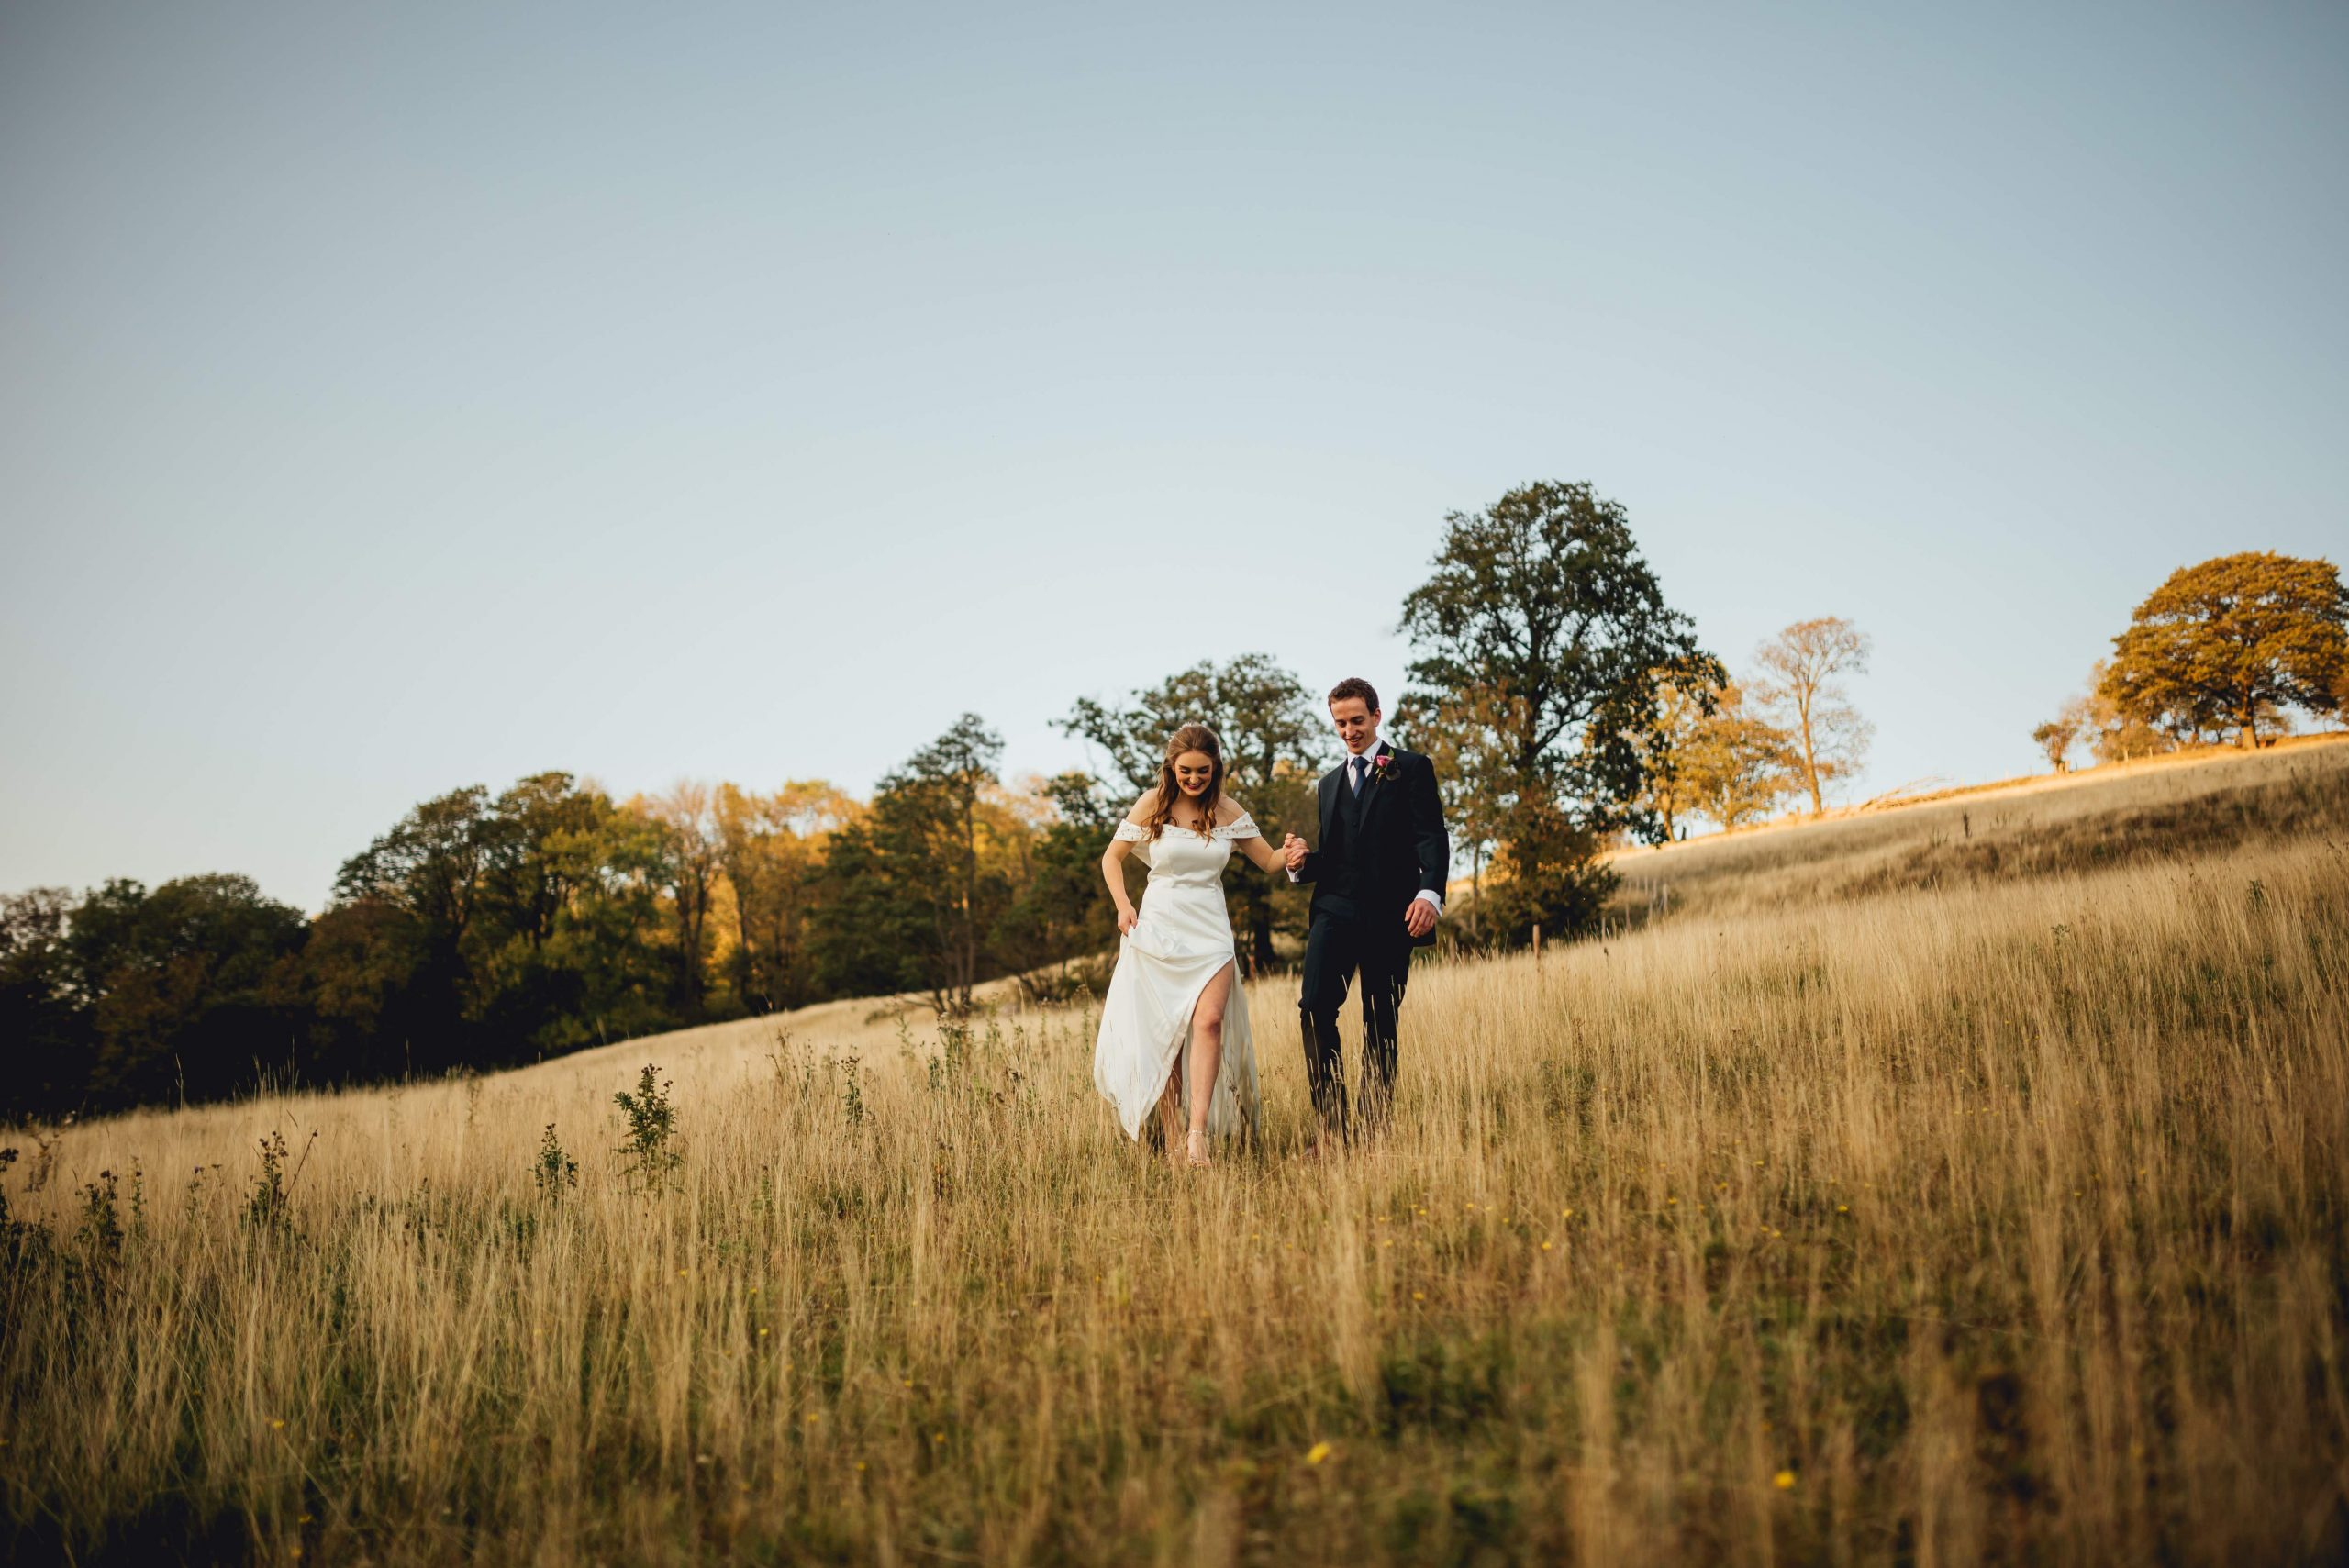 bride and groom walking in a country field